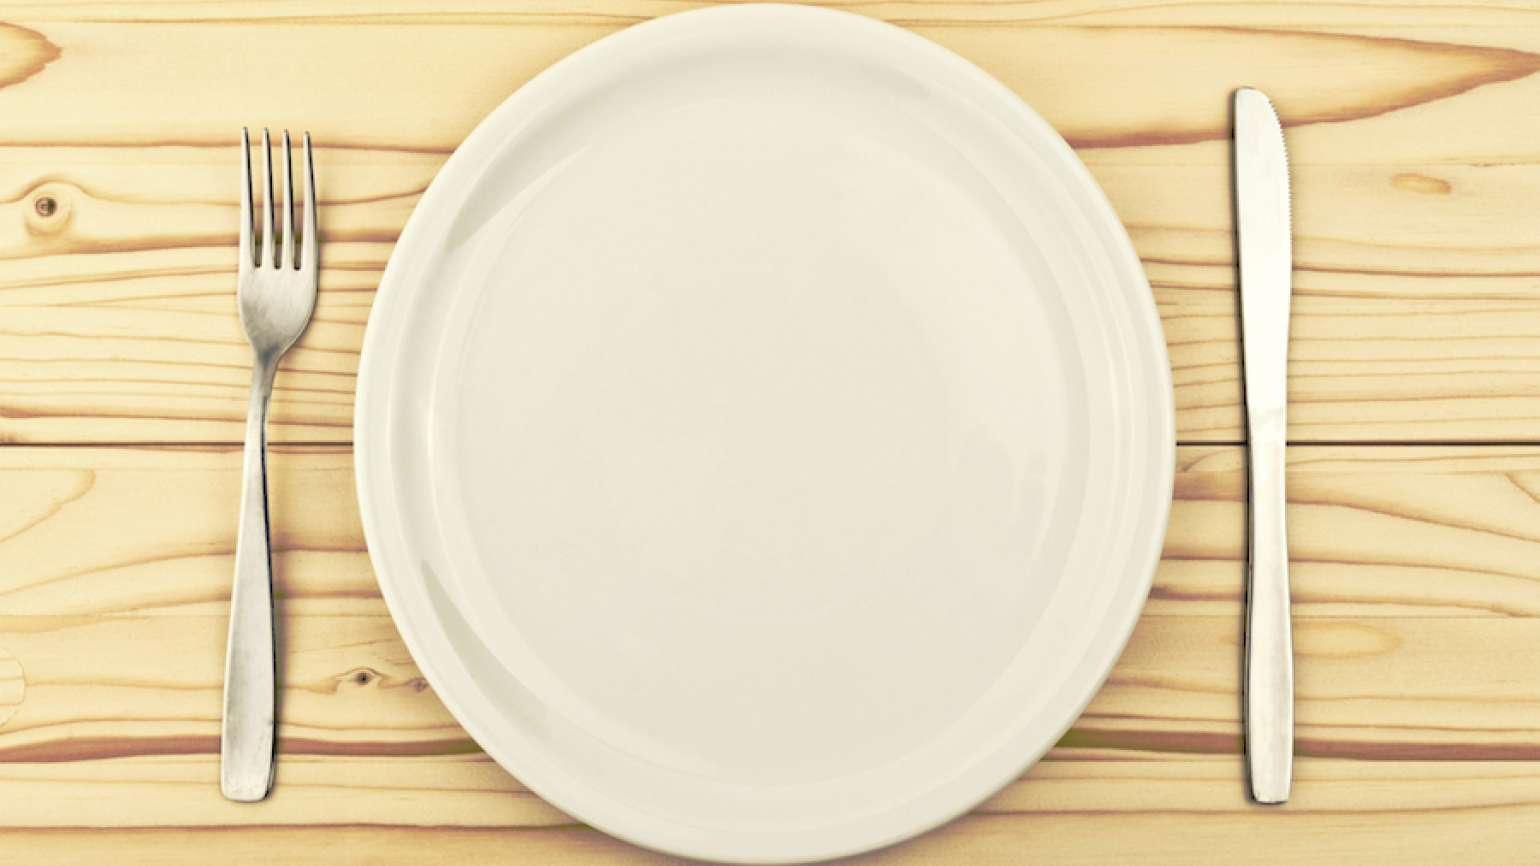 An empty plate. Photo by Igor Stevanovic, Thinkstock.